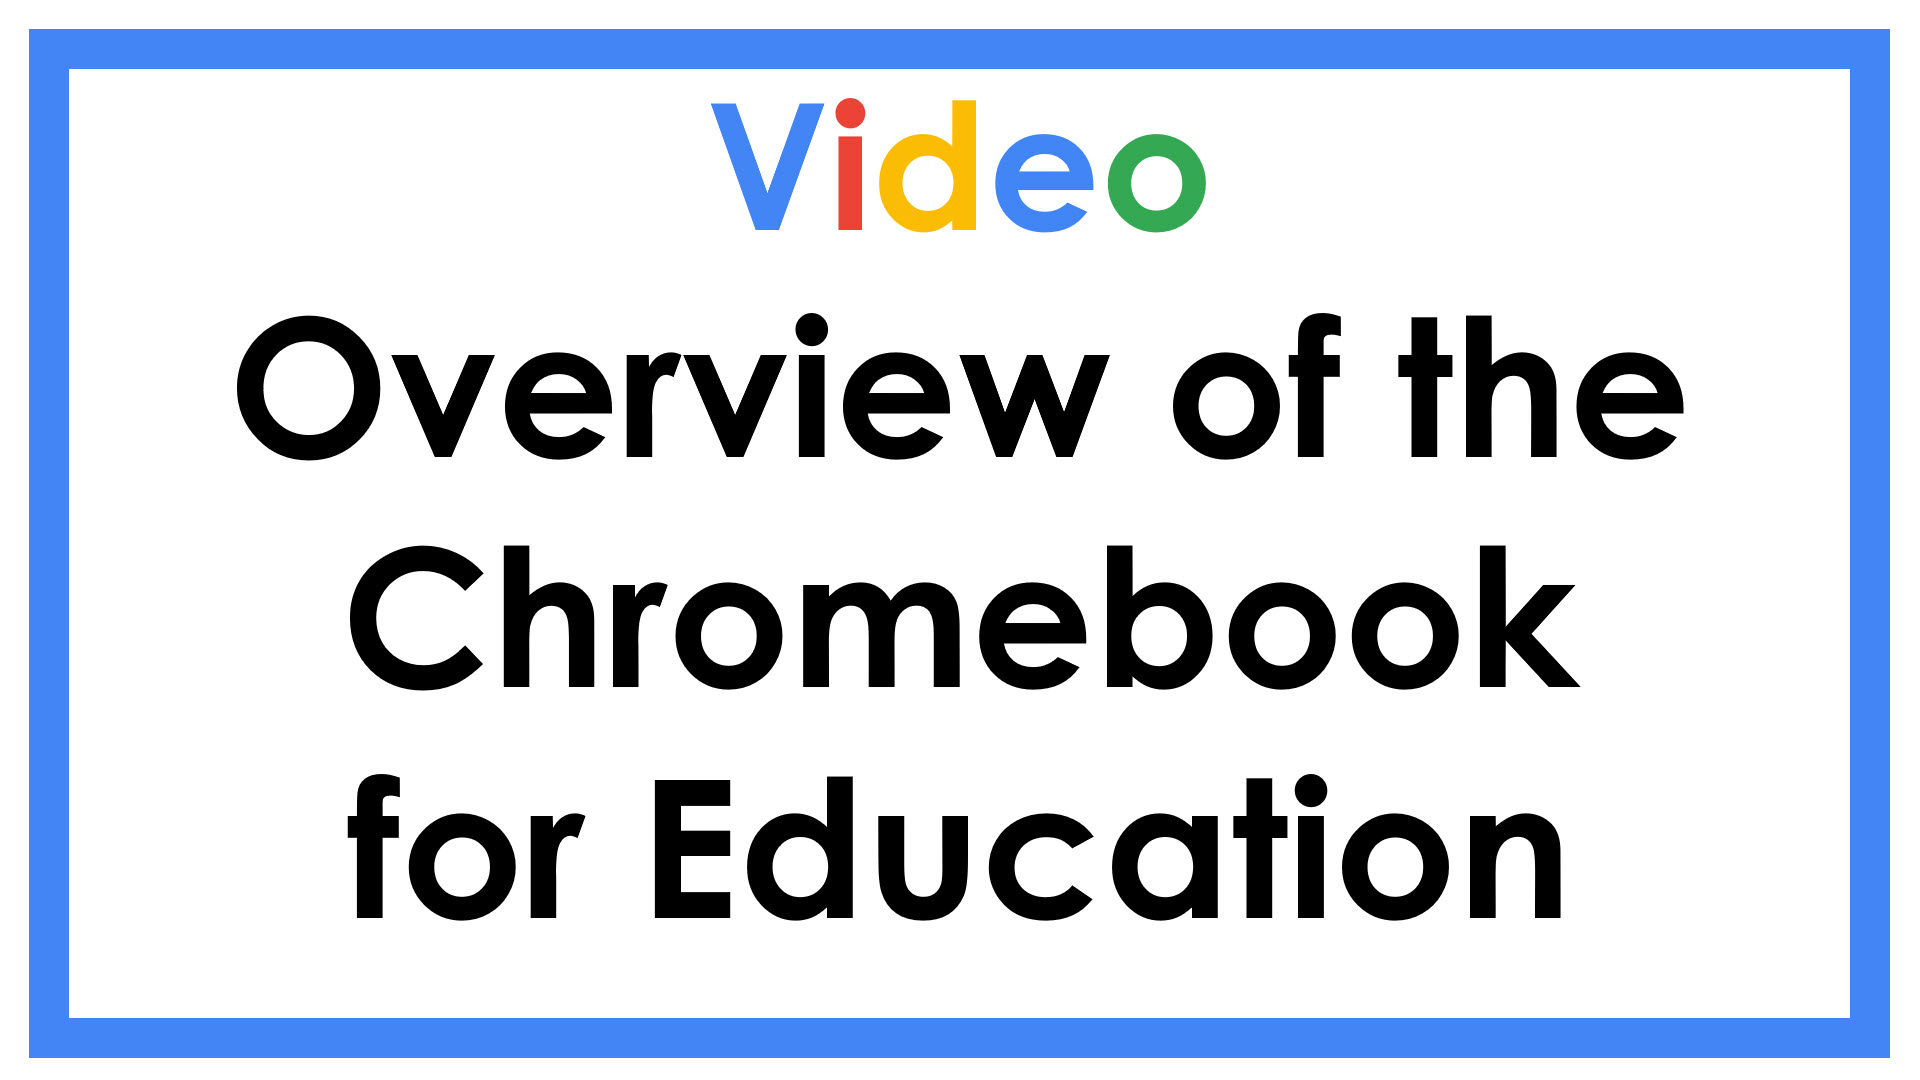 Overview of the Chromebook for Education